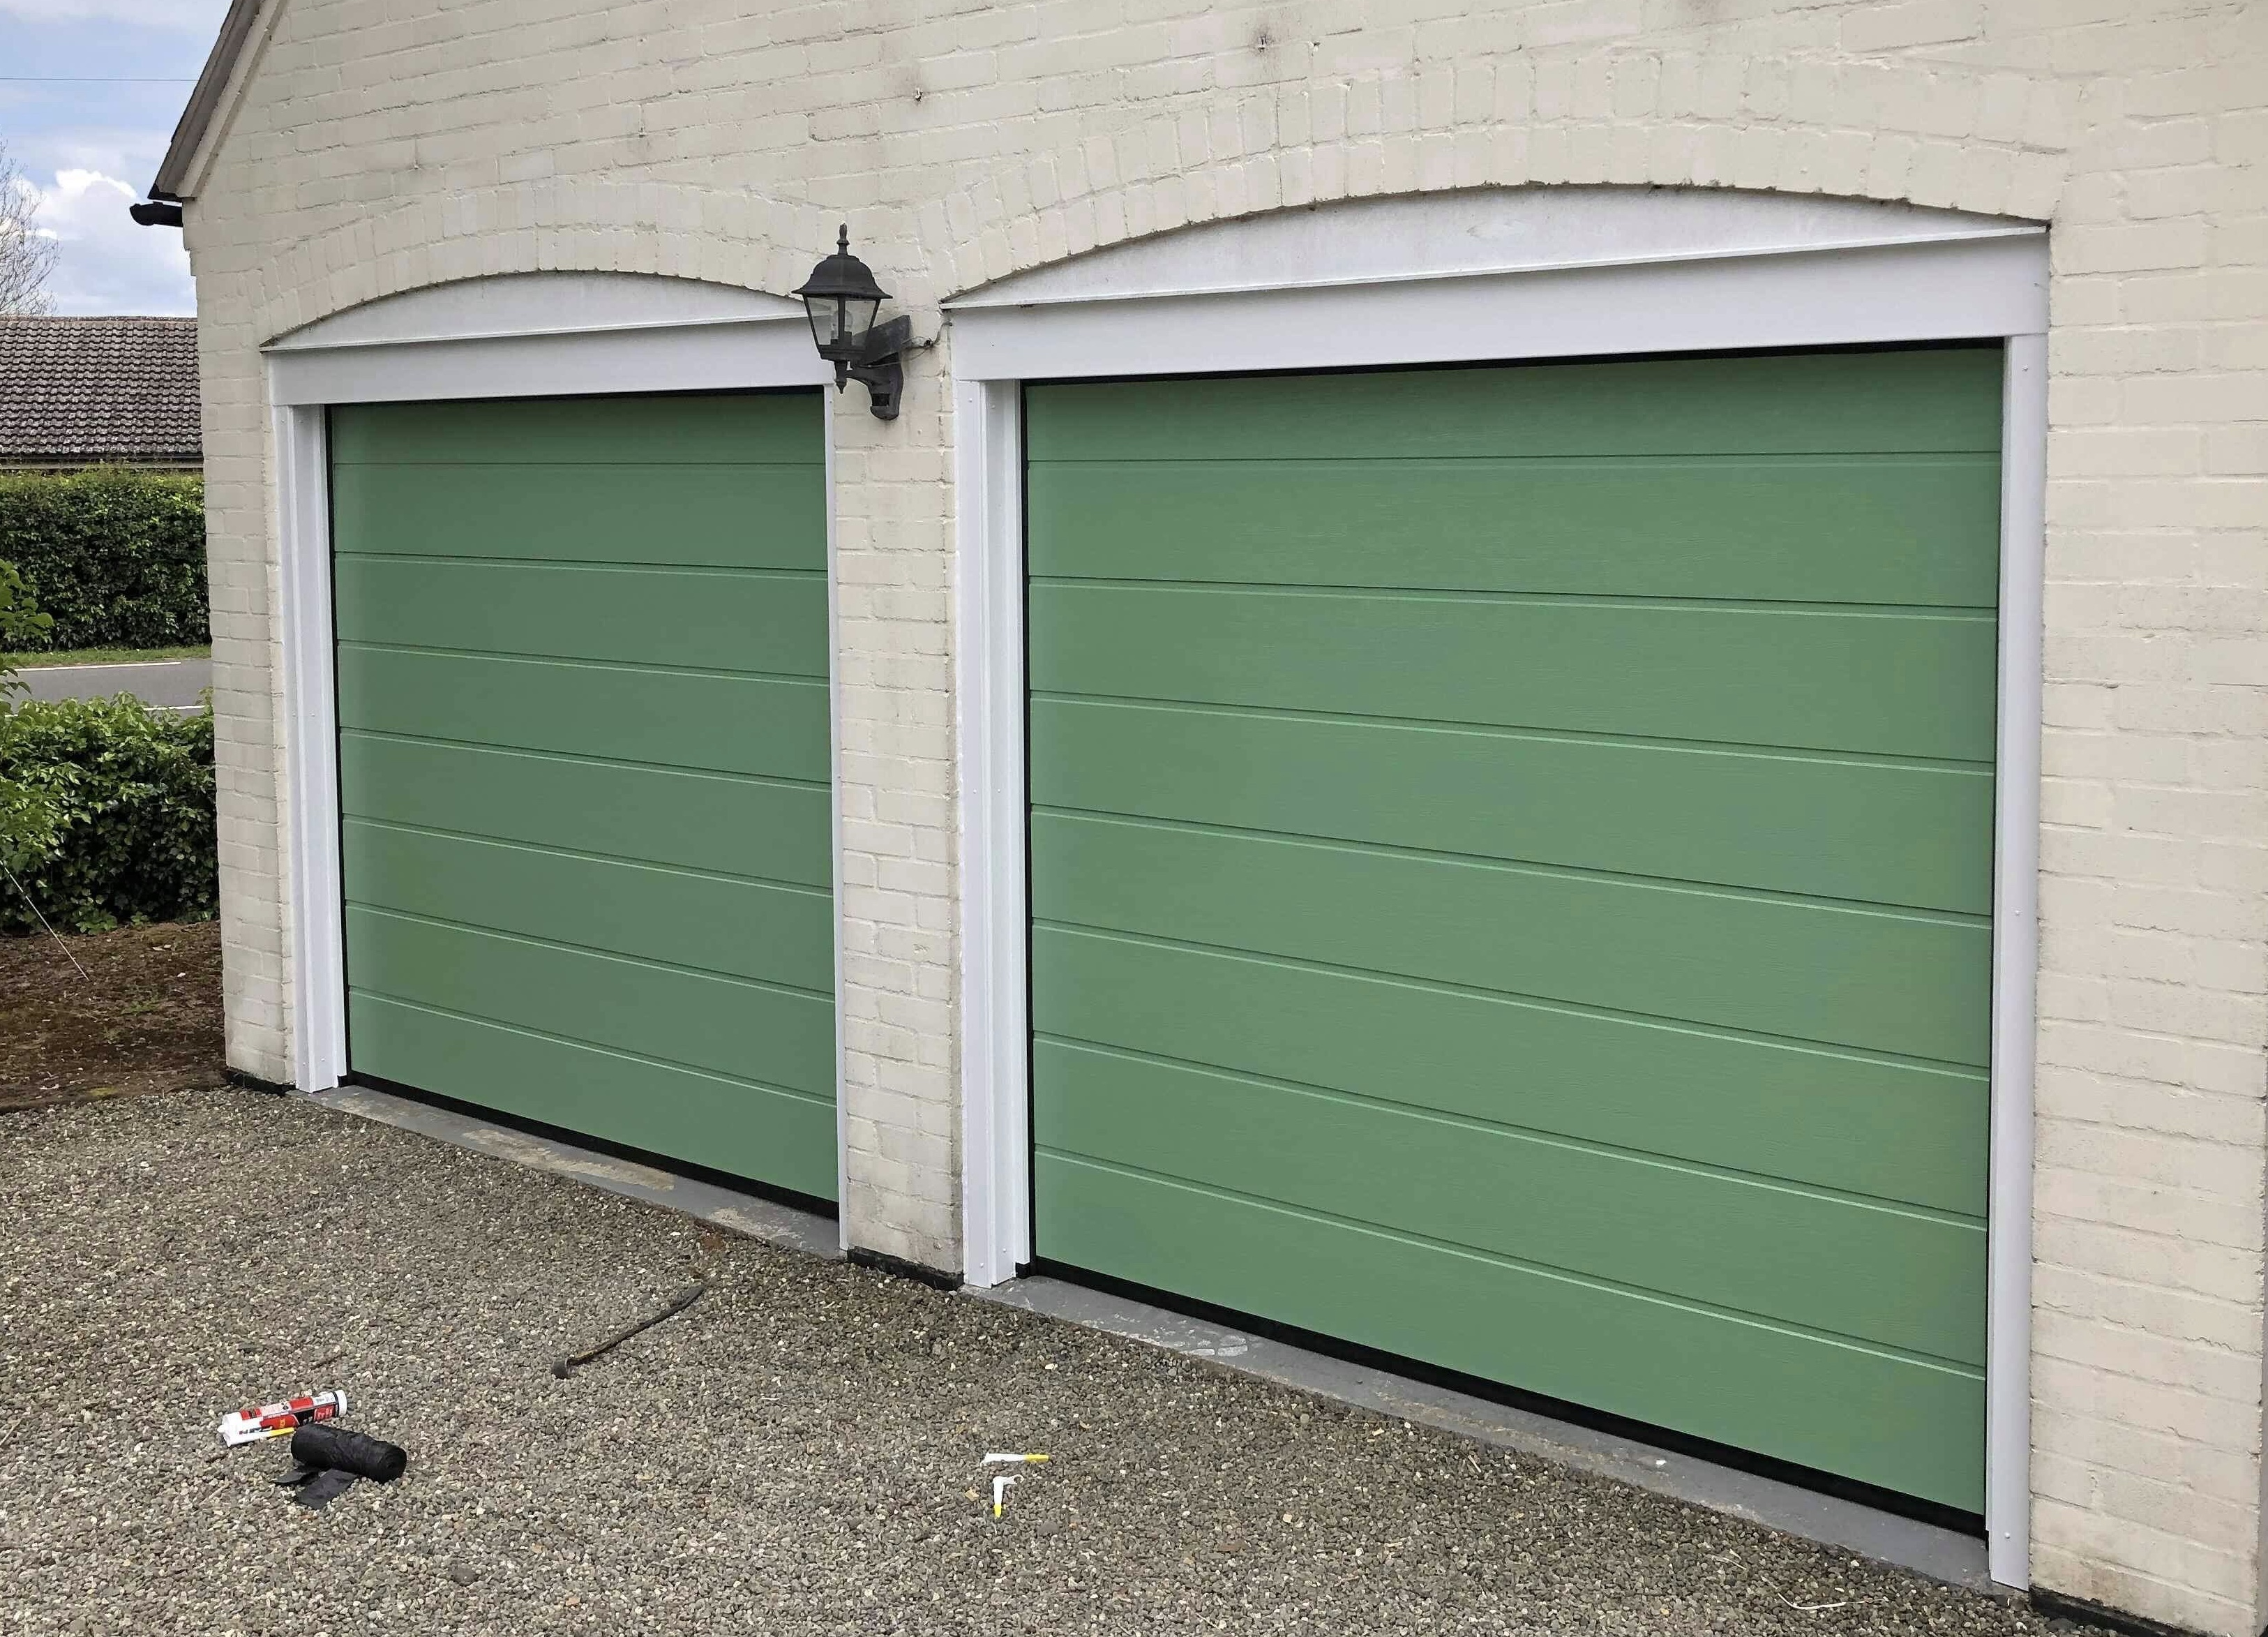 Two sectional garage doors in Chatwell Green RAL colour